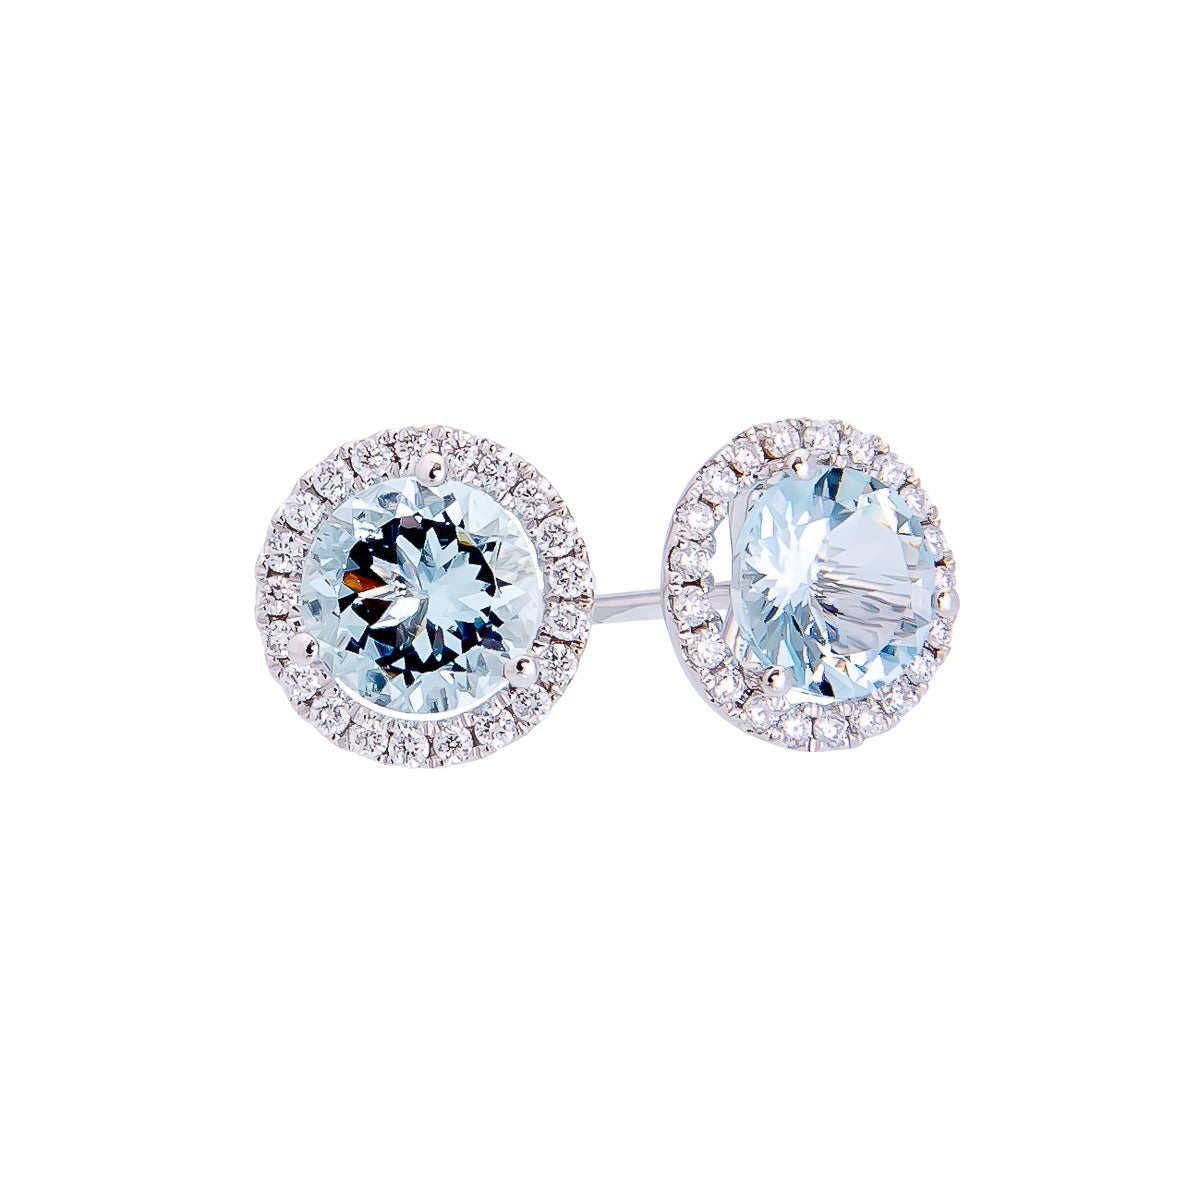 Sabel Collection 14K White Gold Round Aquamarine and Diamond Halo Stud Earrings